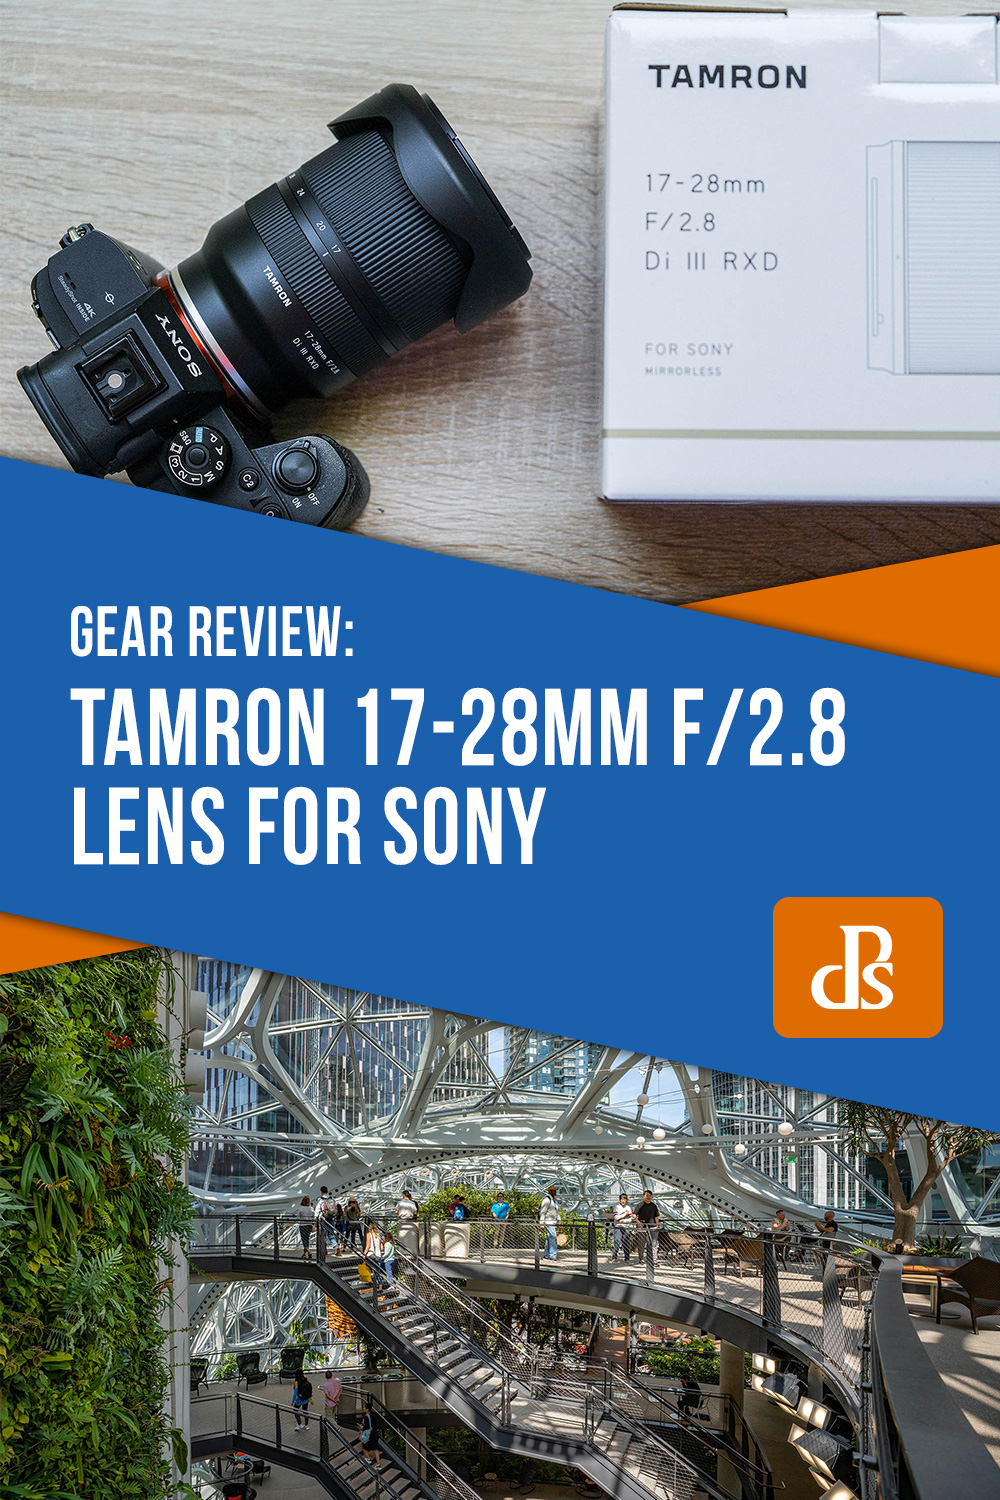 Tamron 17-28mm f/2.8 Lens for Sony